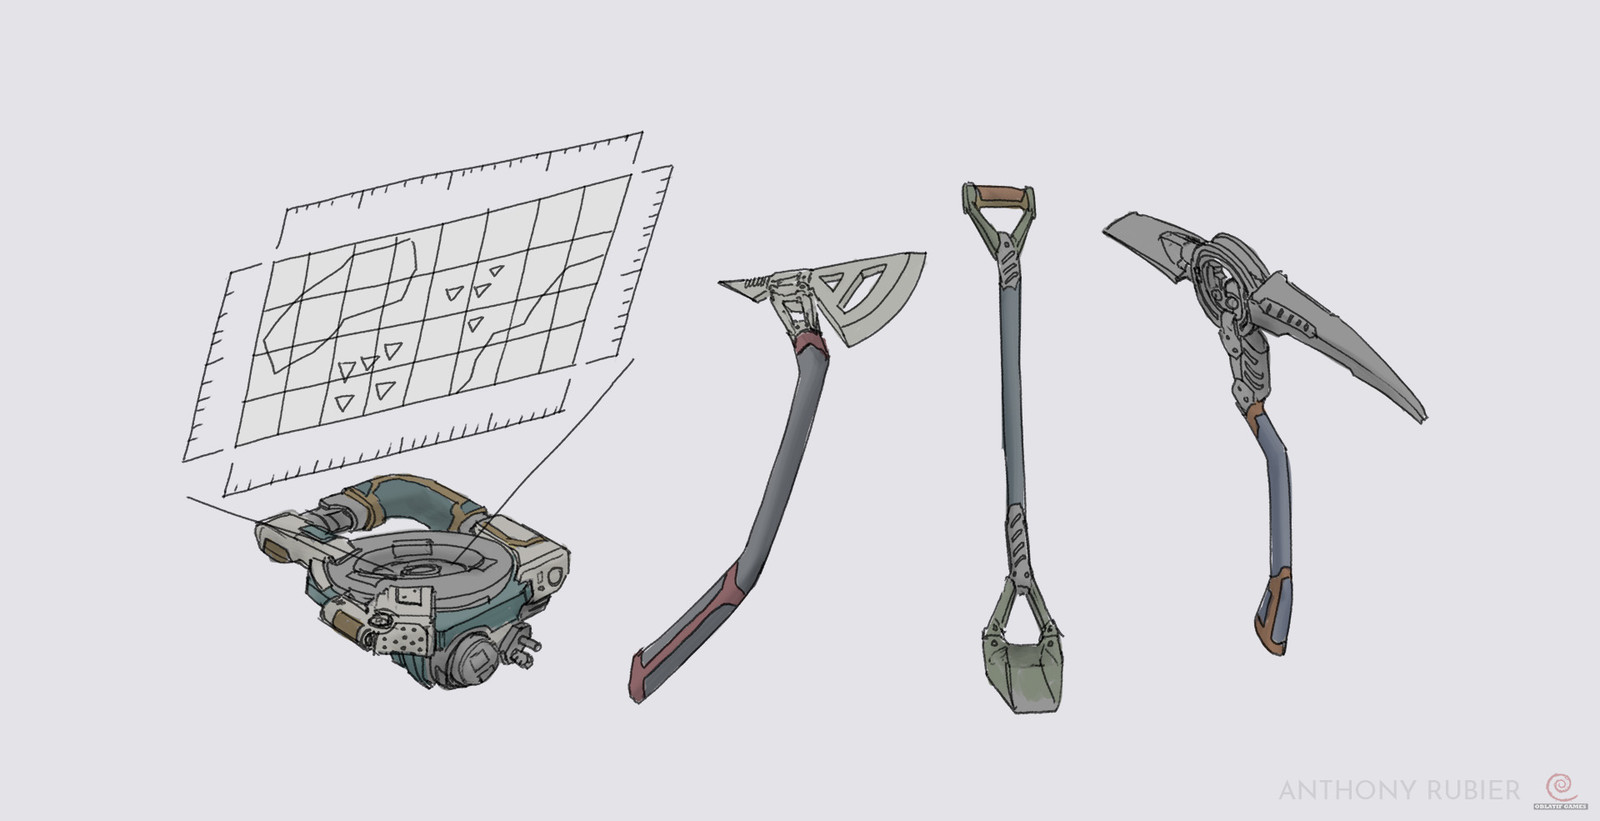 Other concepts for tools